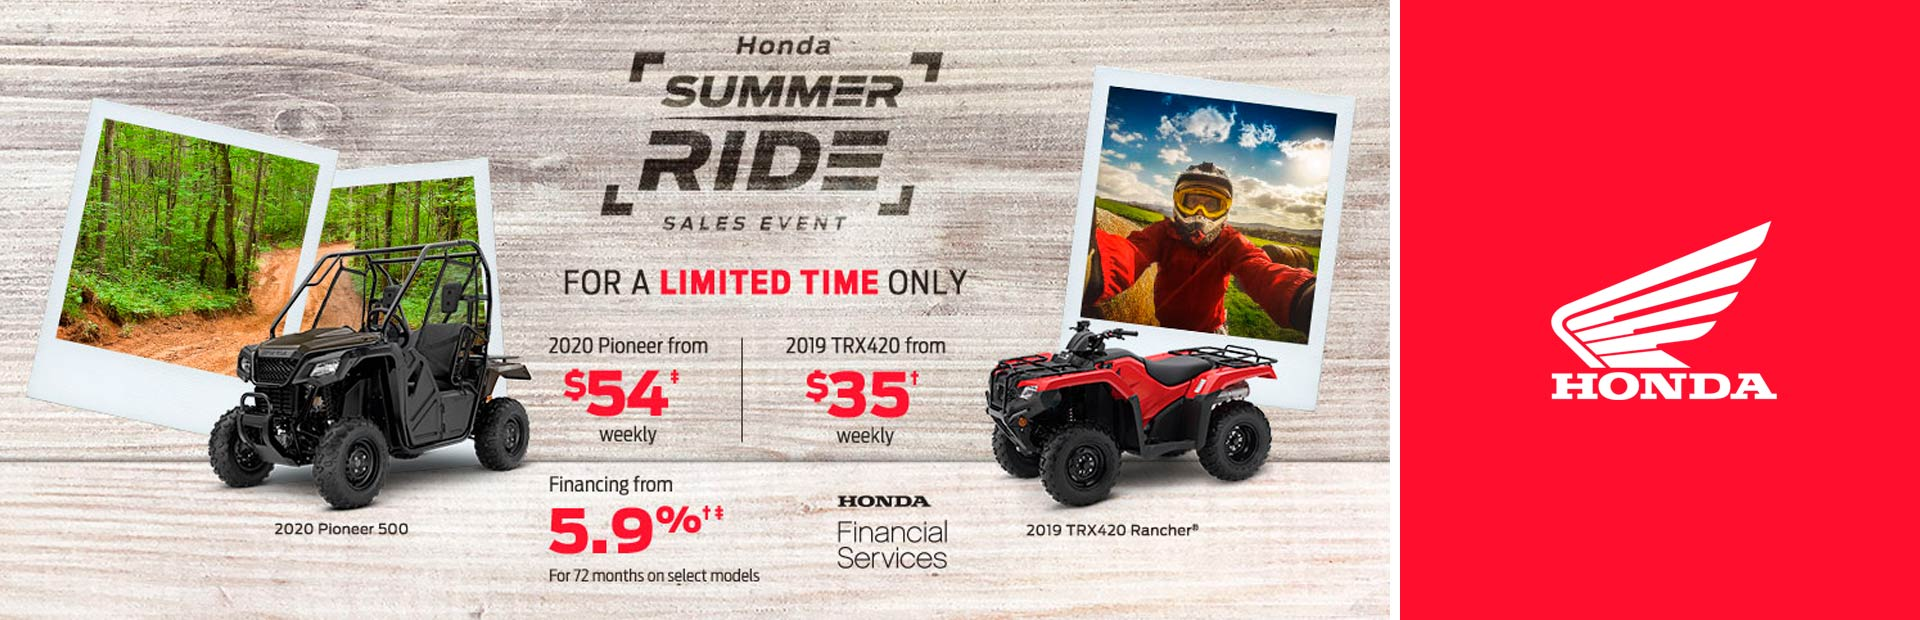 Honda: Summer Ride Sales Event - atvs/sxs